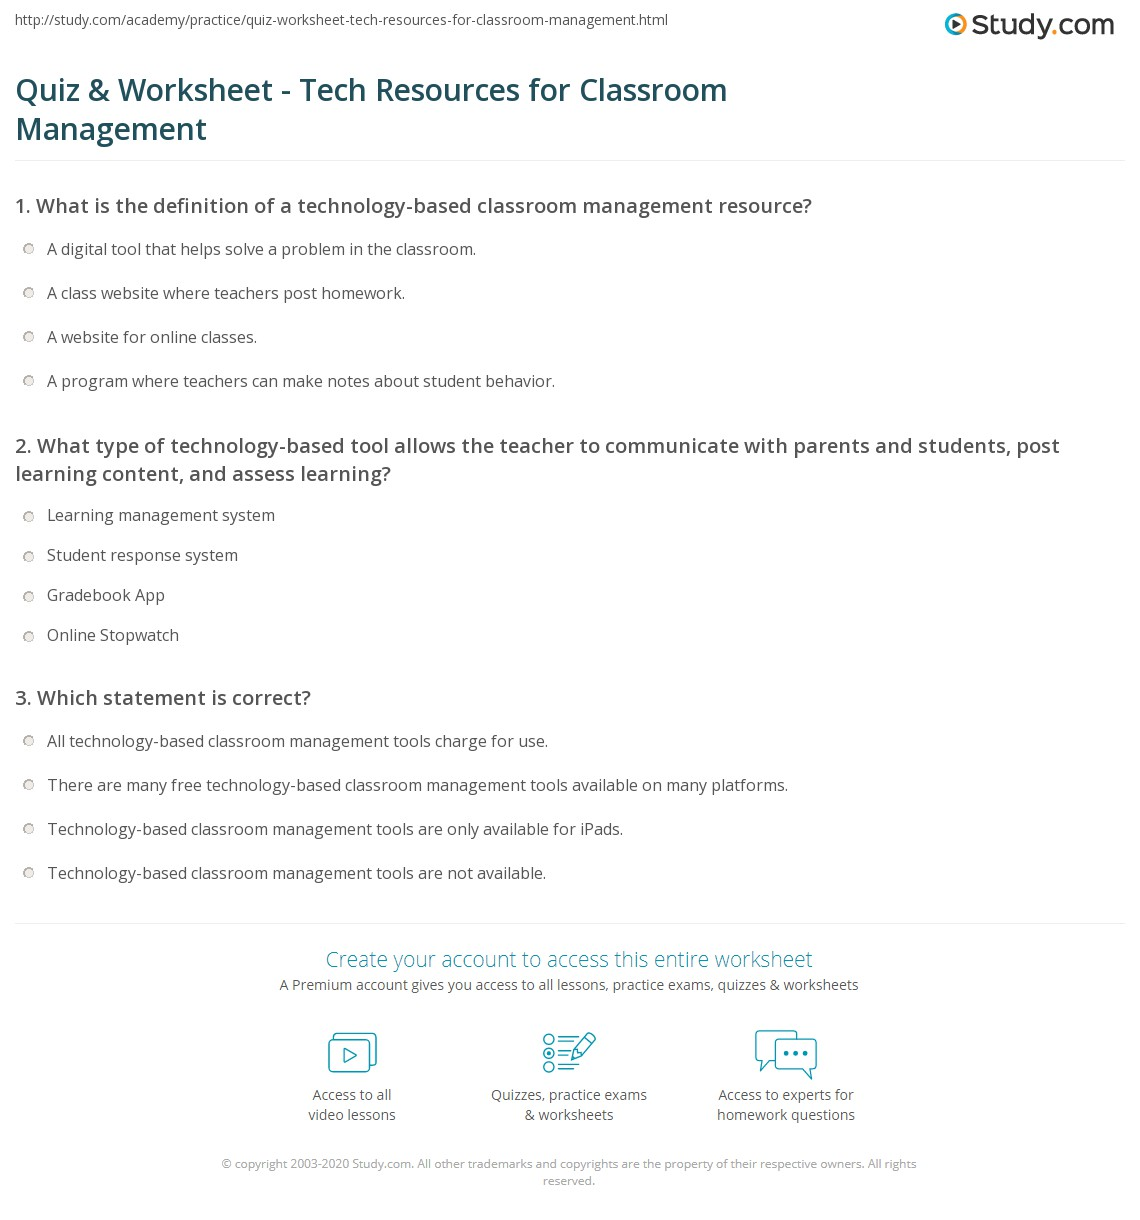 quiz & worksheet - tech resources for classroom management | study